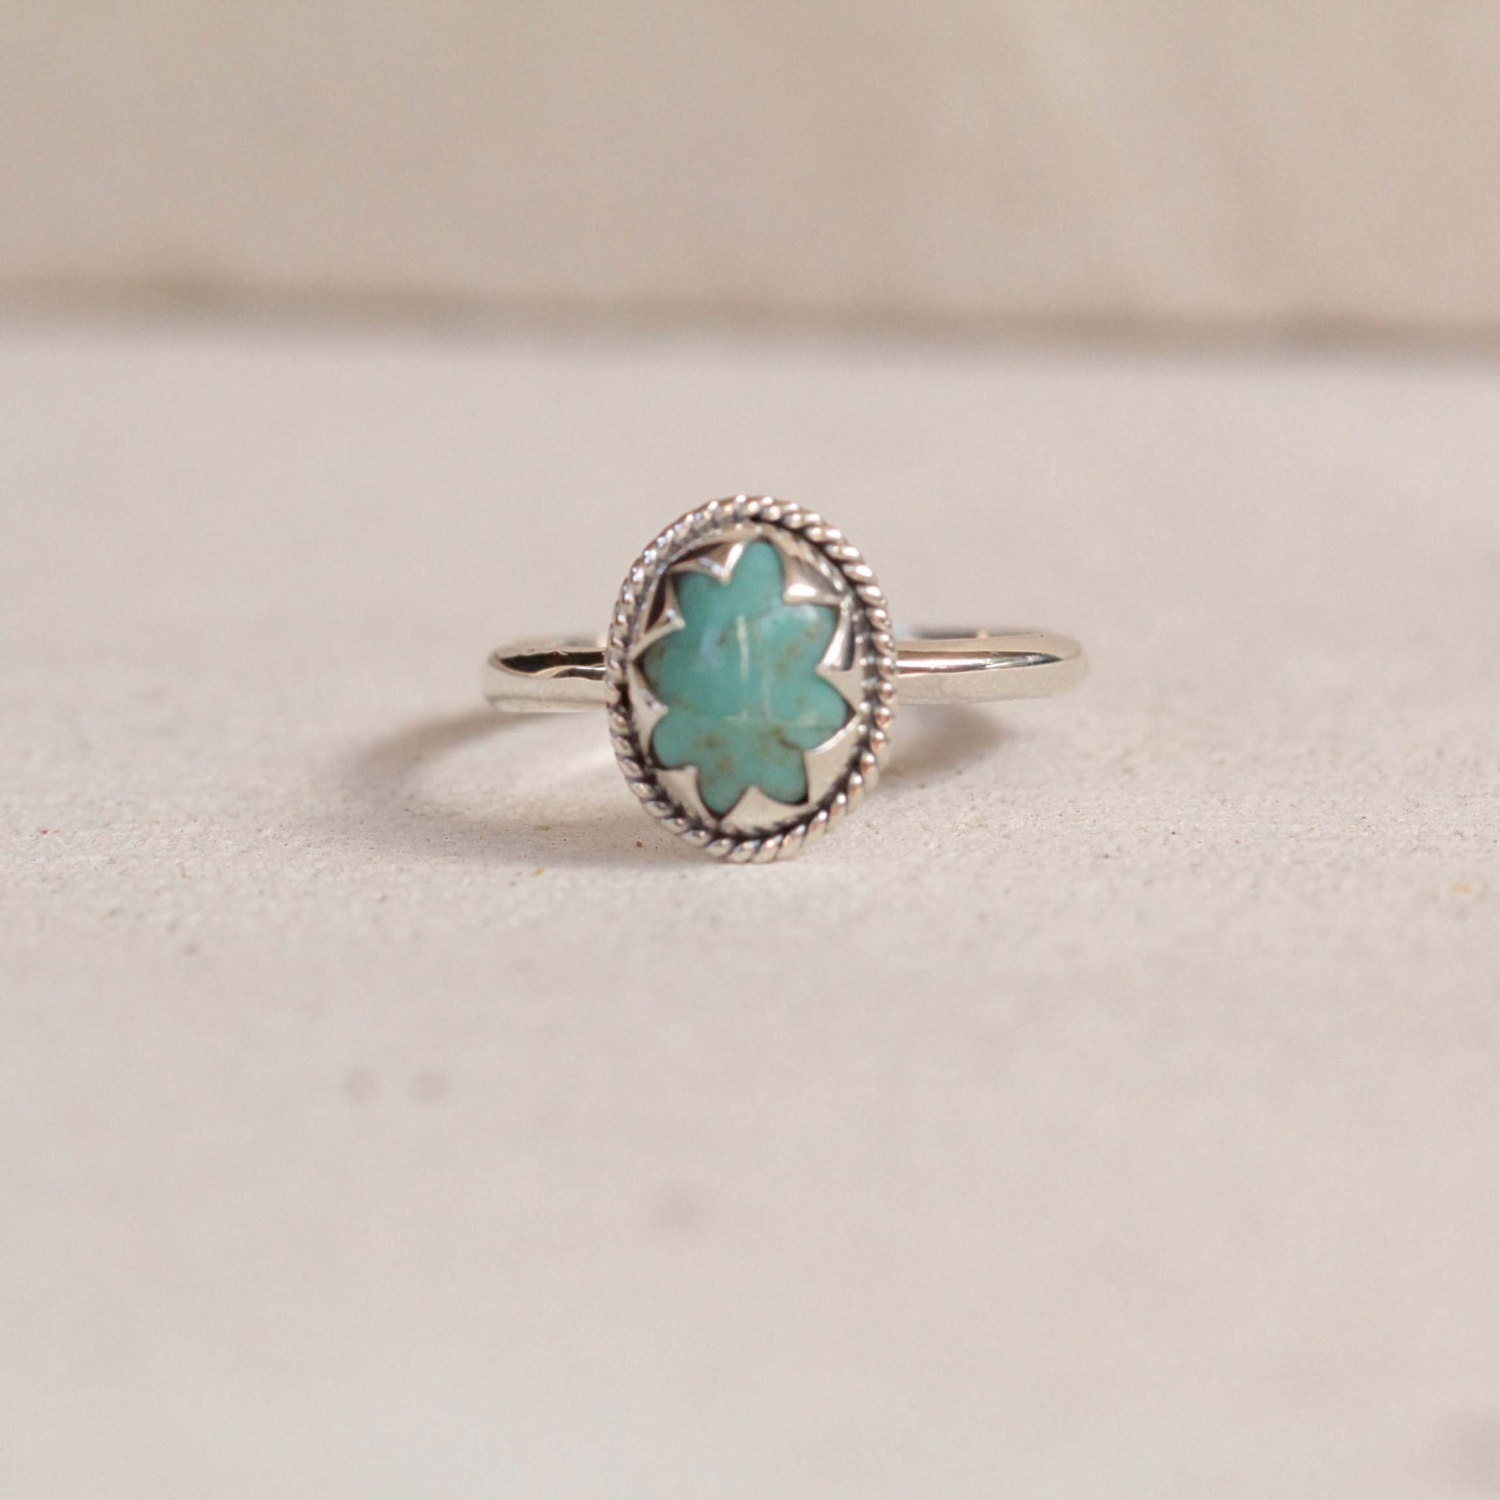 nepal com stone for ethnic natural on handmade accessories jewelry ring sterling aliexpress with from gift women silver rings turquoise retro item in vintage